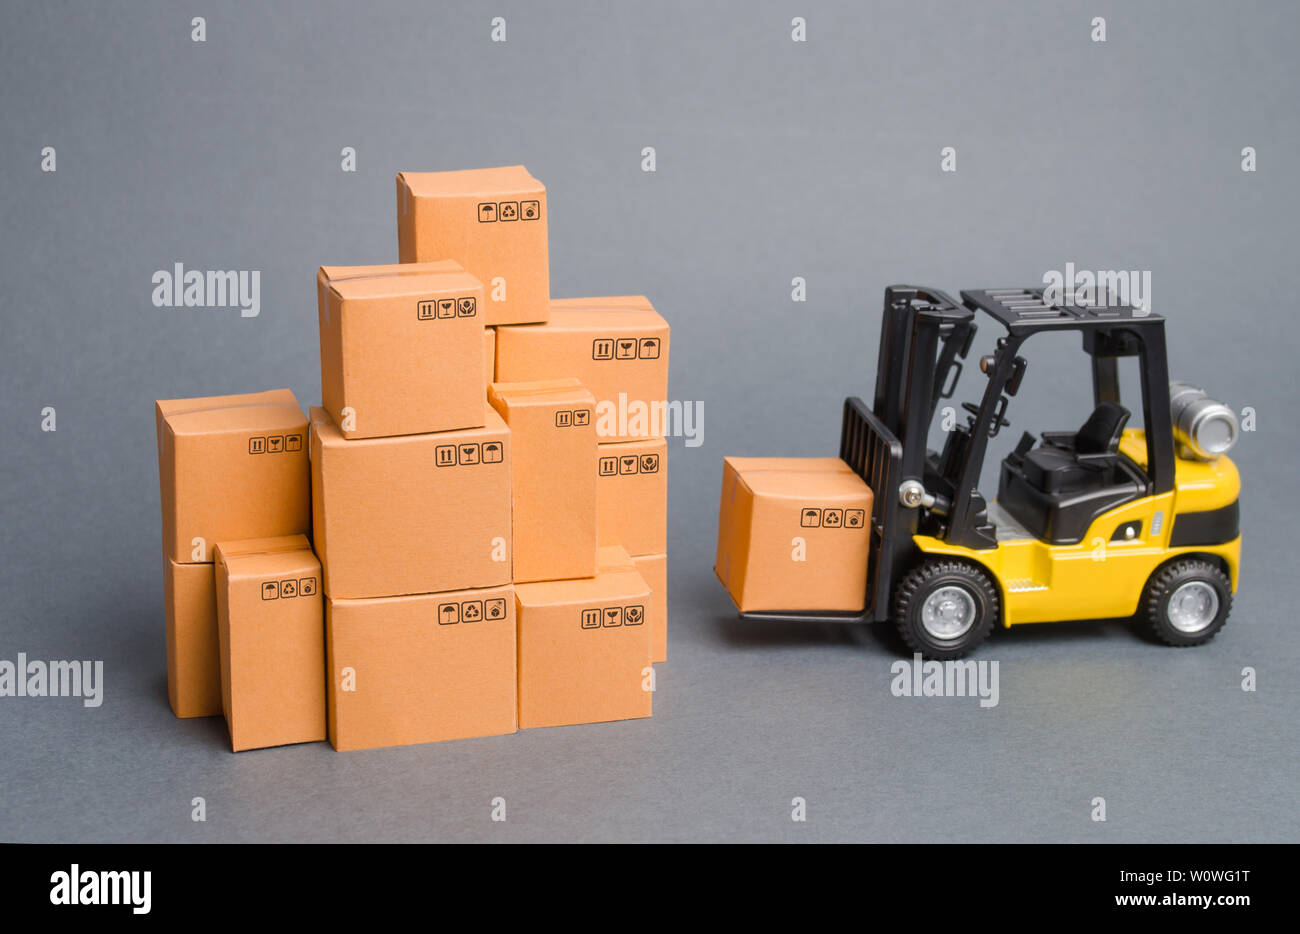 Yellow Forklift truck brings the box to a stack of boxes. Industry and Production. warehouses and transportation. raise economic indicators. exports, - Stock Image